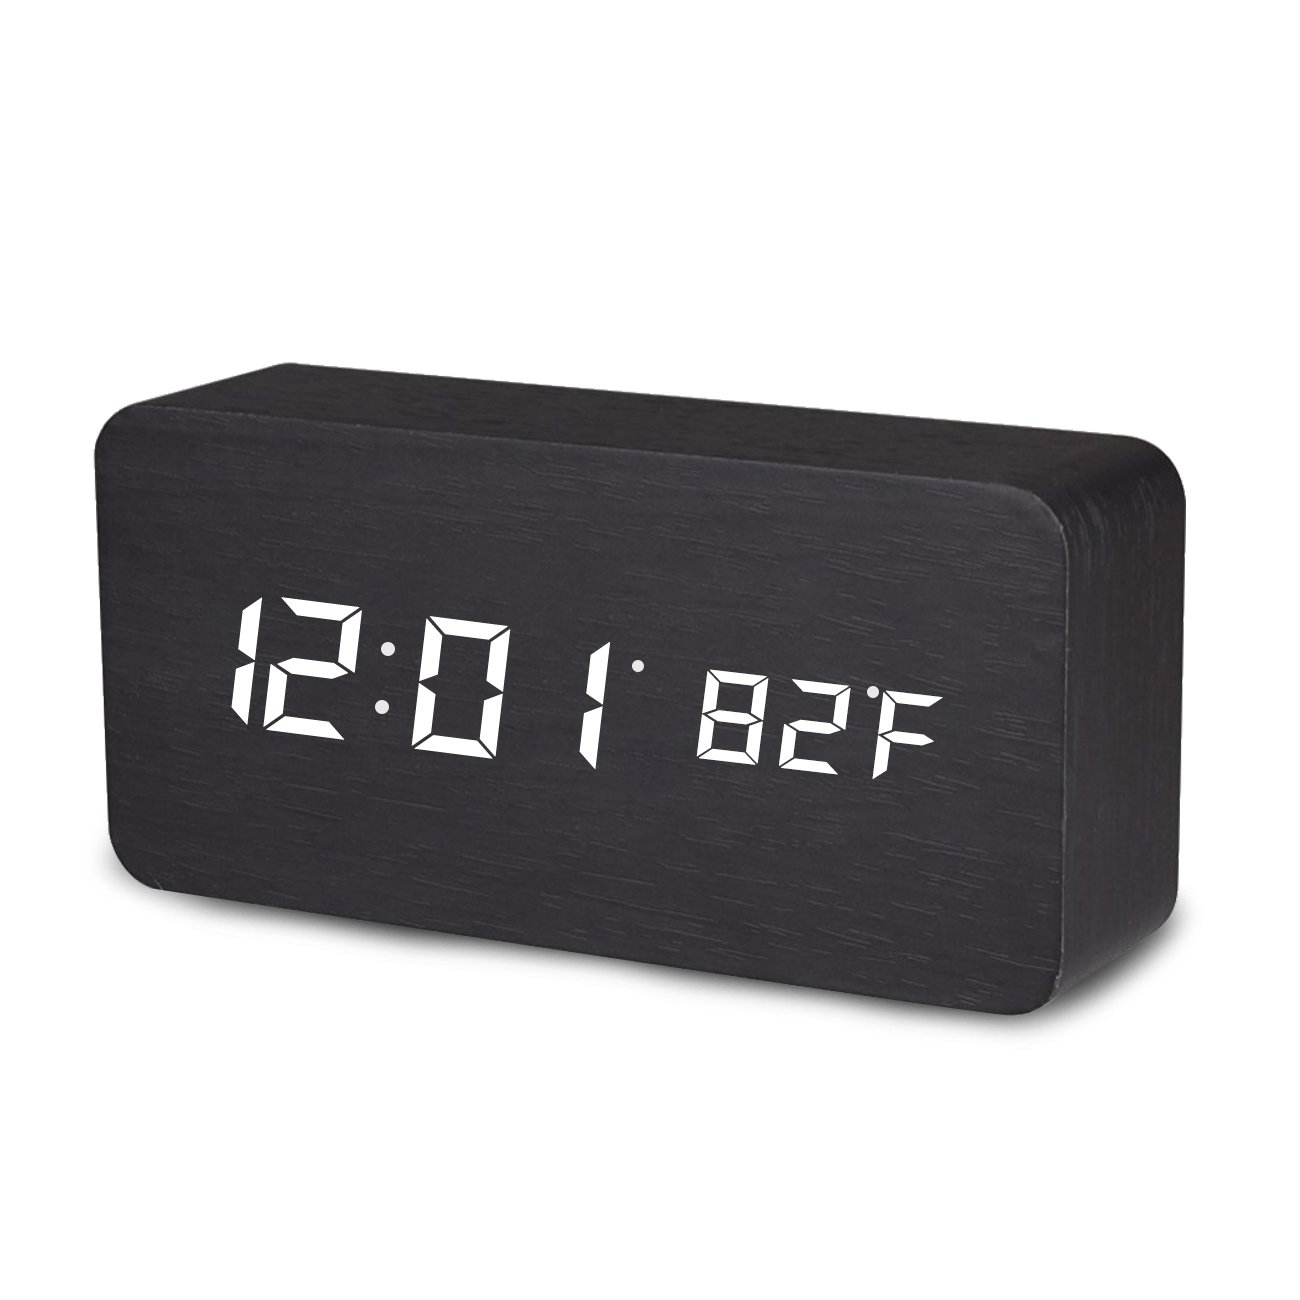 Digital Alarm Clock, Temperature Date LED Display Wood Grain Clock 3 Levels Brightness Voice Control Modern Simplicity Wood Digital Clock (Black) MiToo